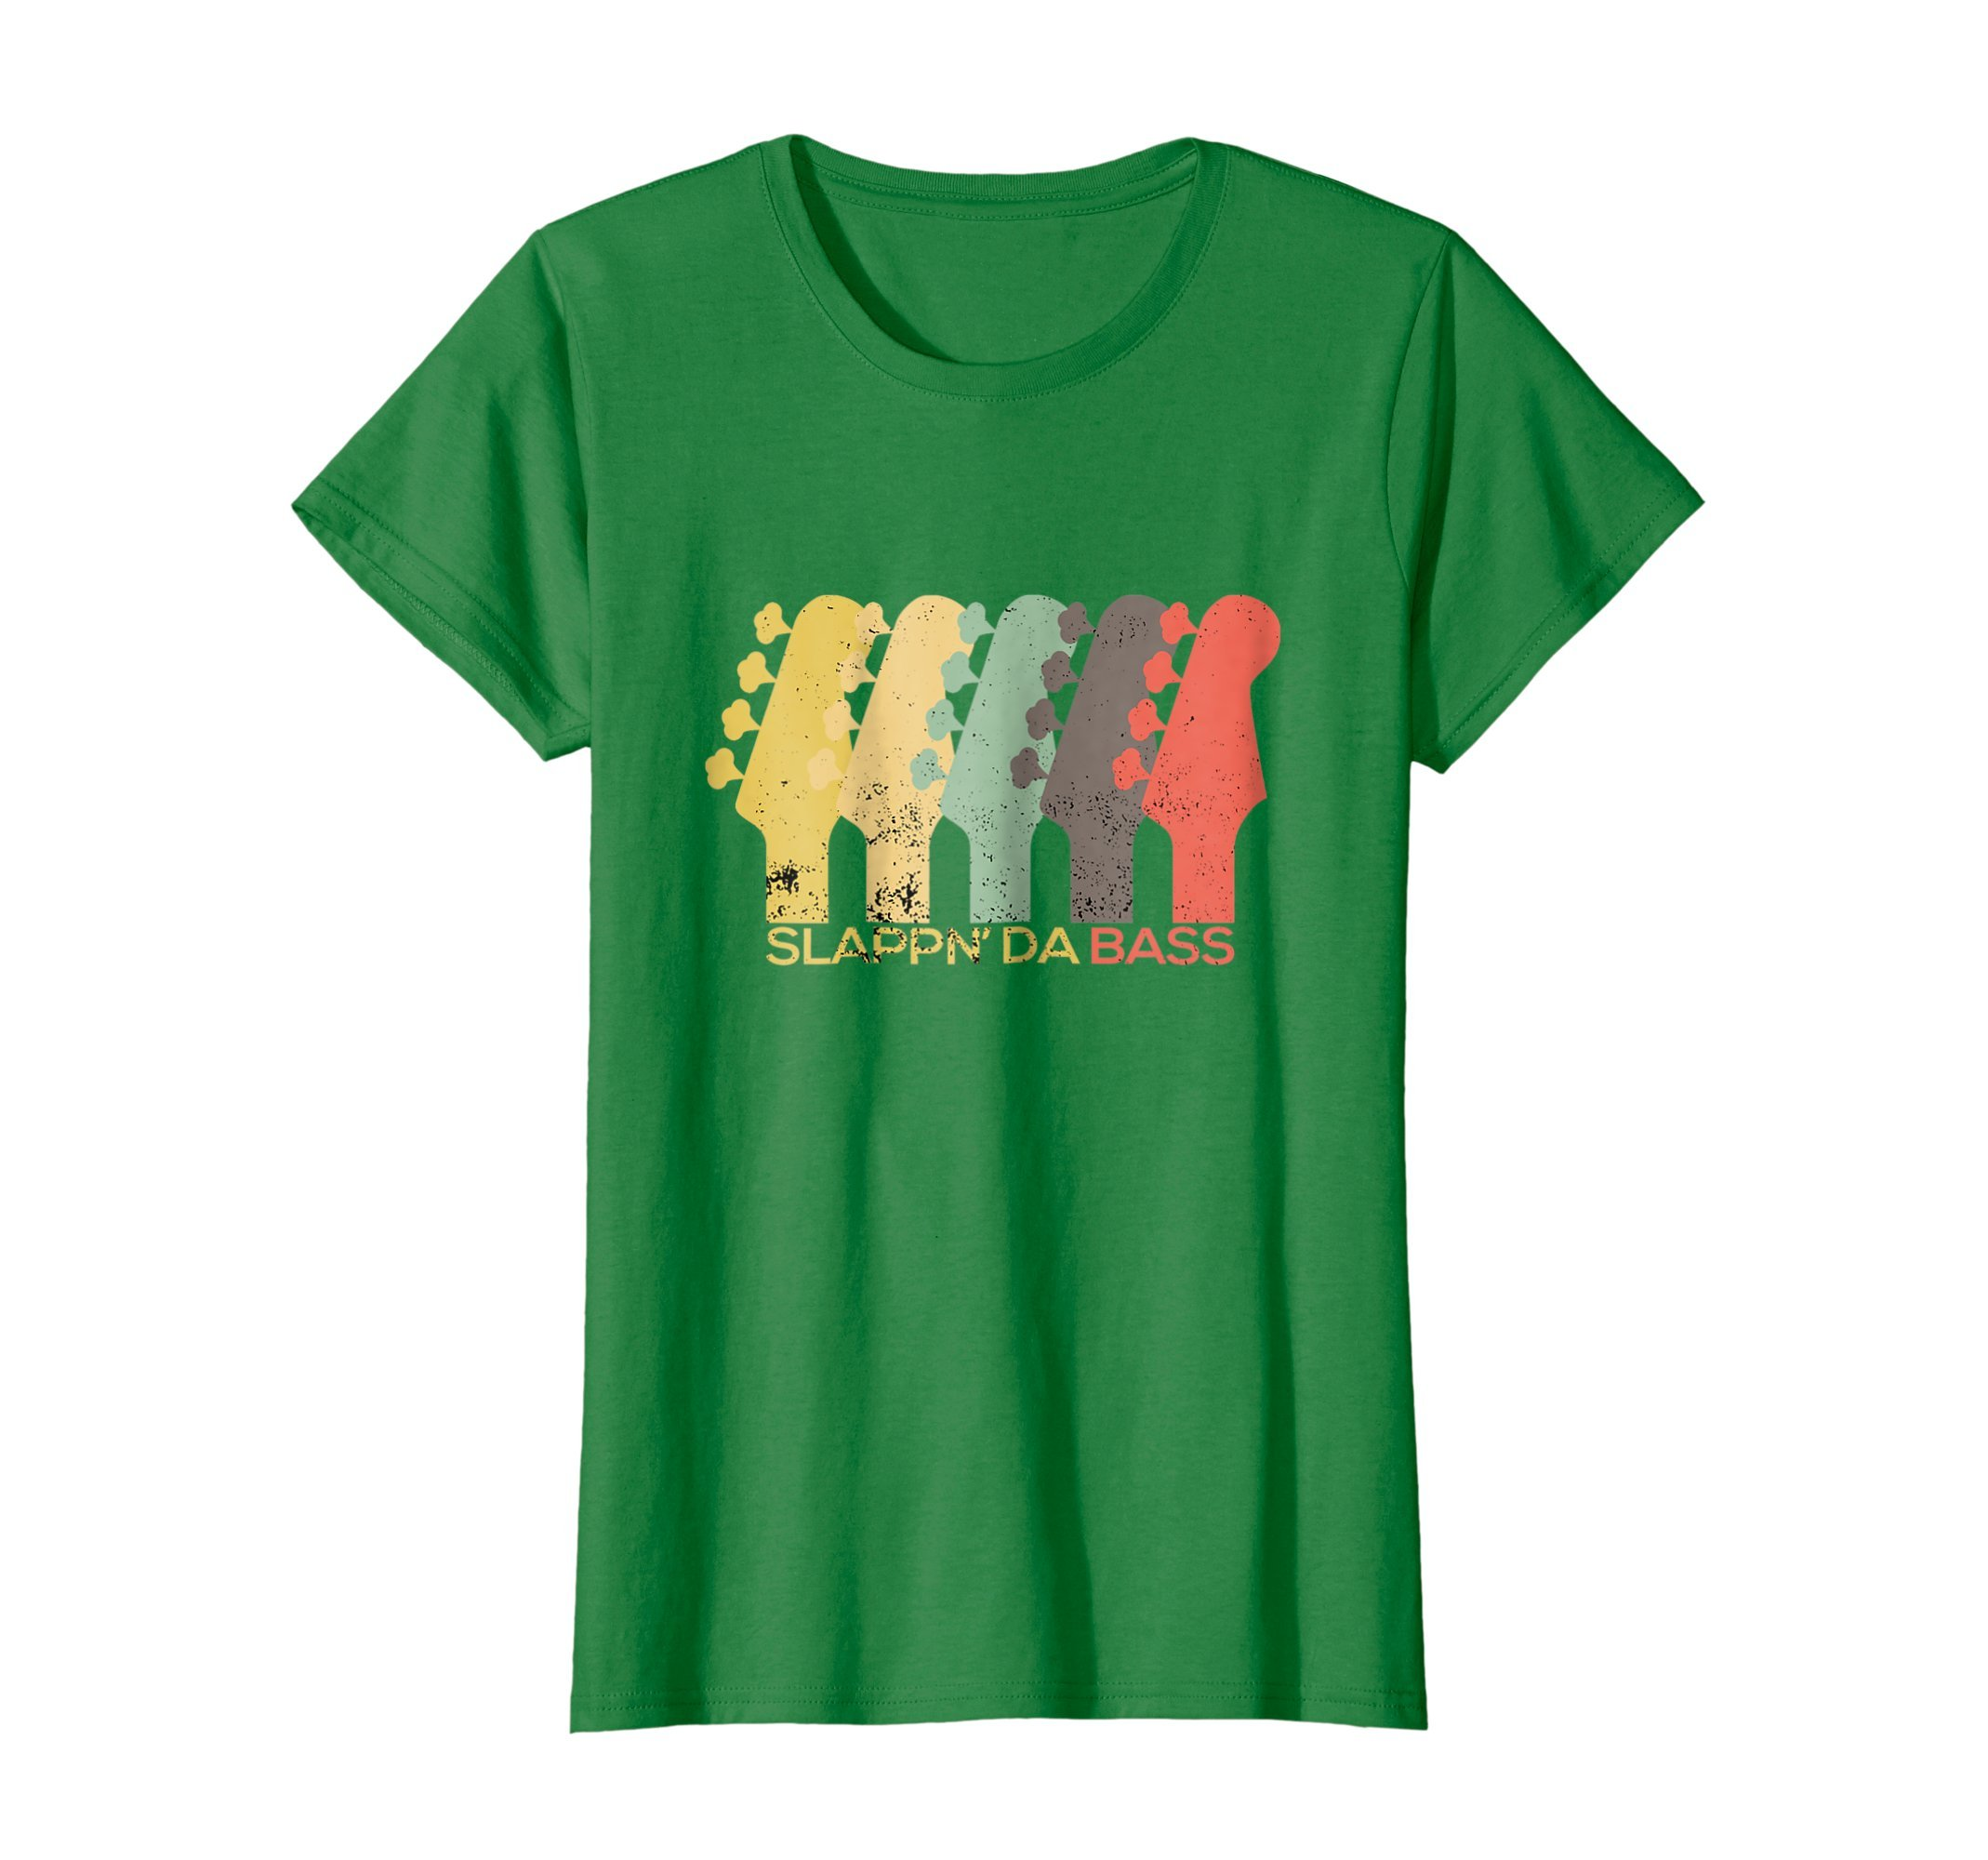 Womens Vintage Bass Guitar T-Shirt Guitar Headstock Shirt Gift Men Medium Kelly Green